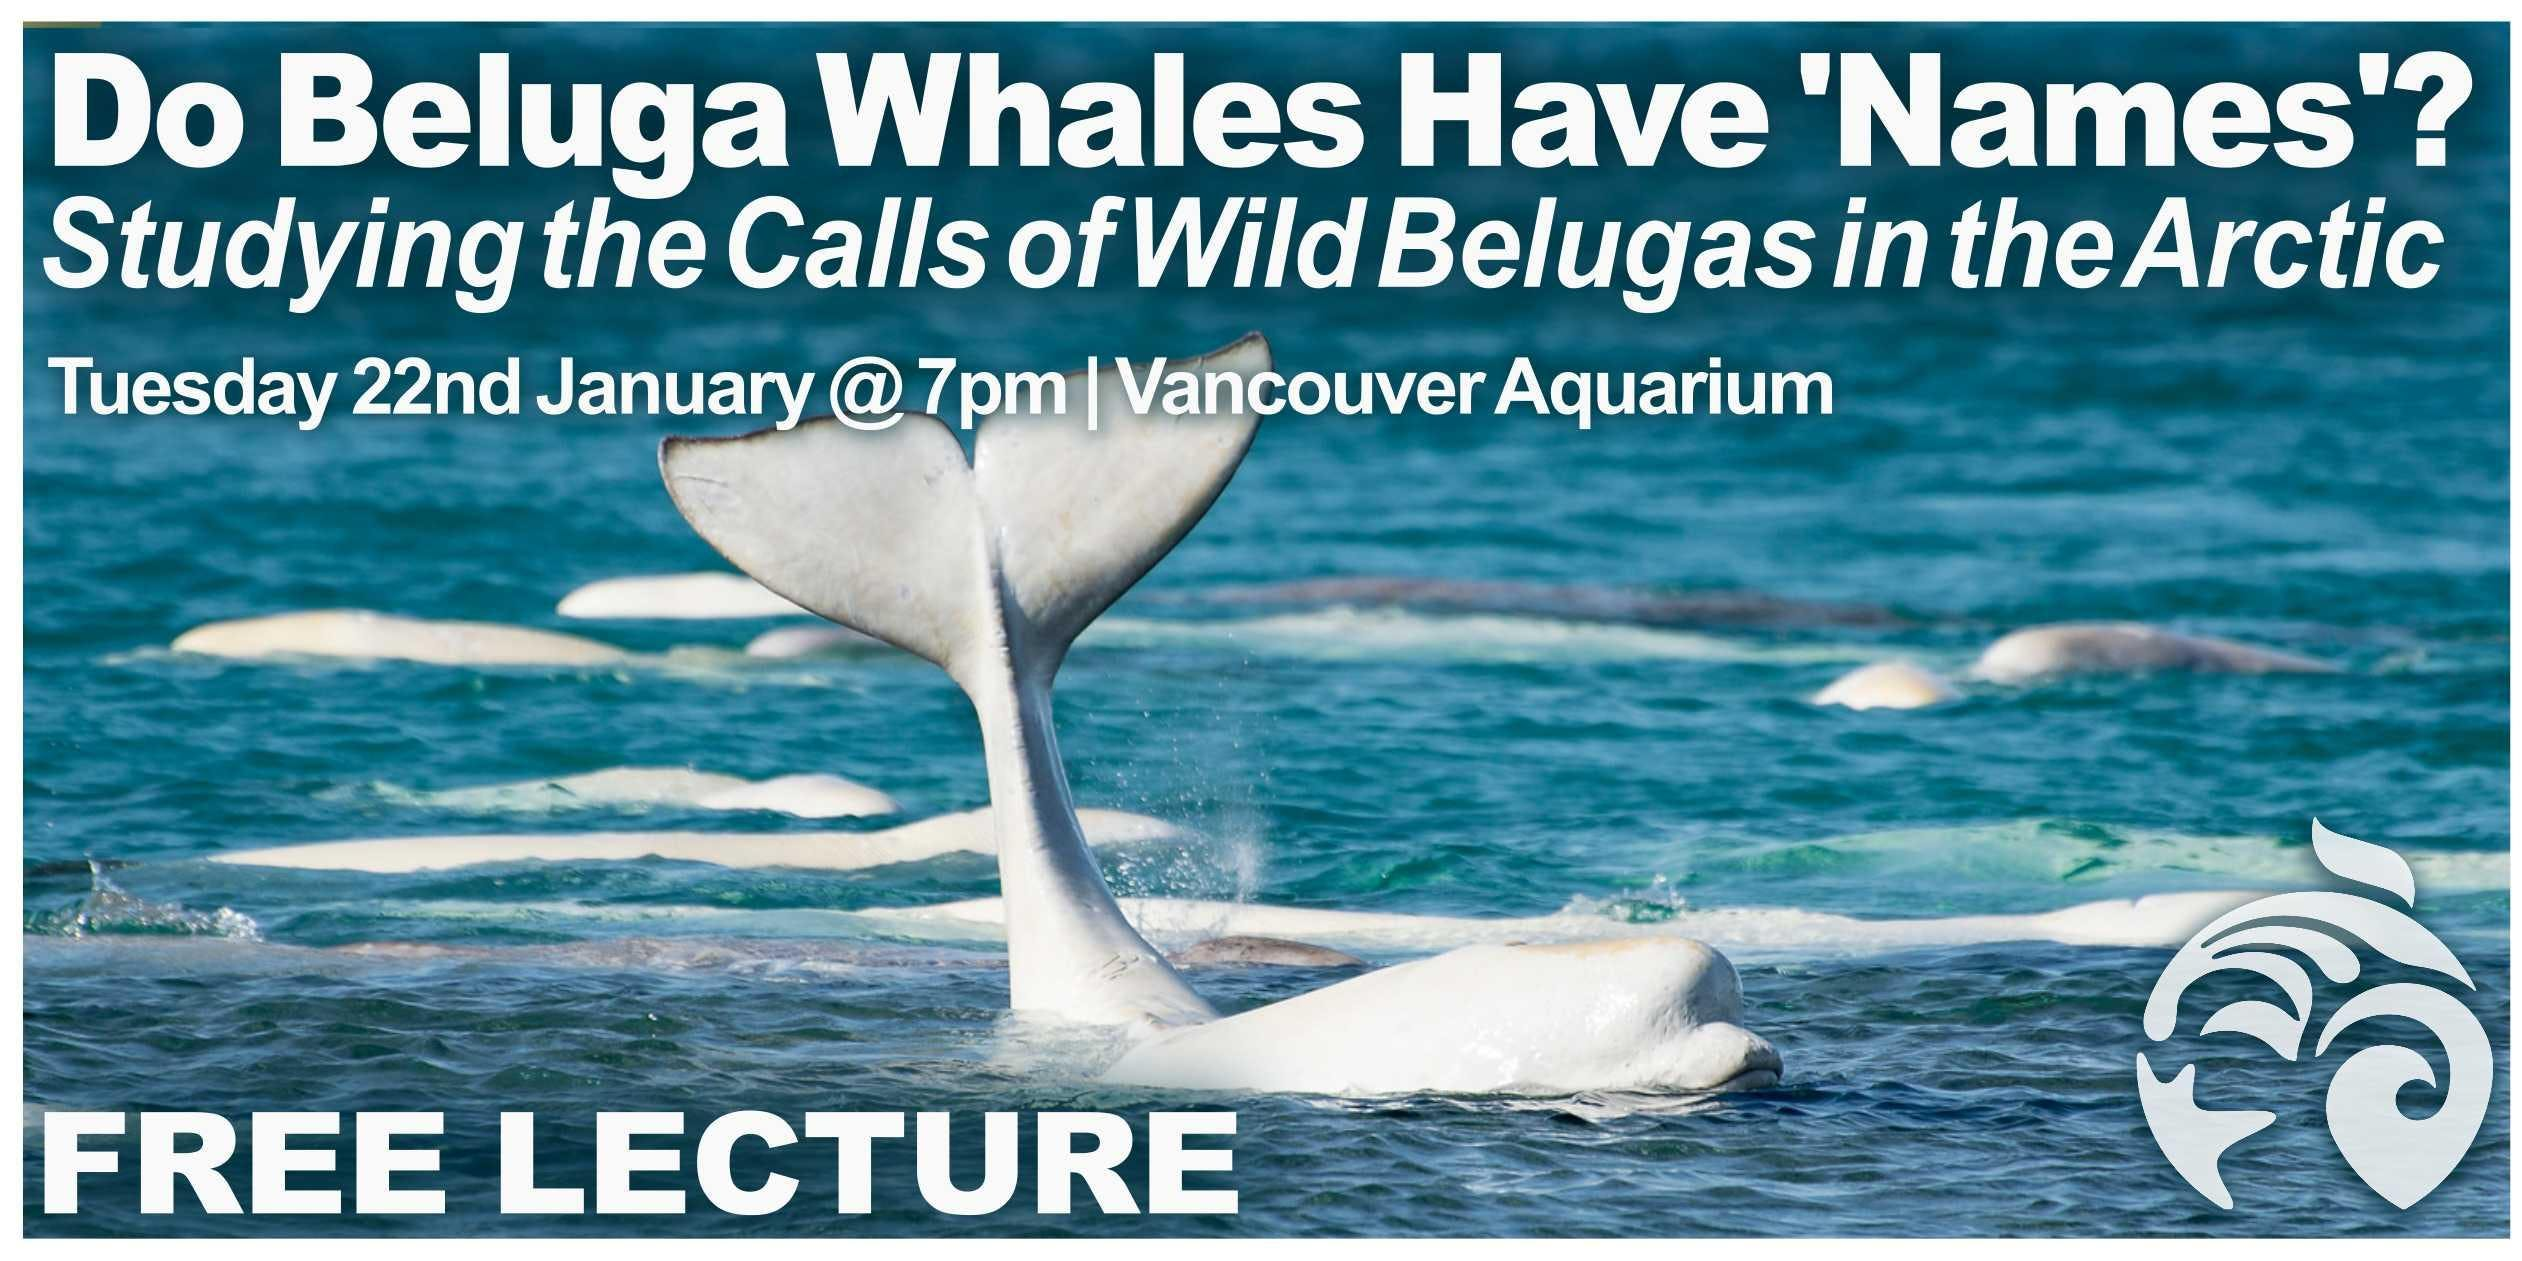 Do Beluga Whales Have 'Names'? Studying The Calls Of Wild Belugas in the Arctic (Free Lecture)